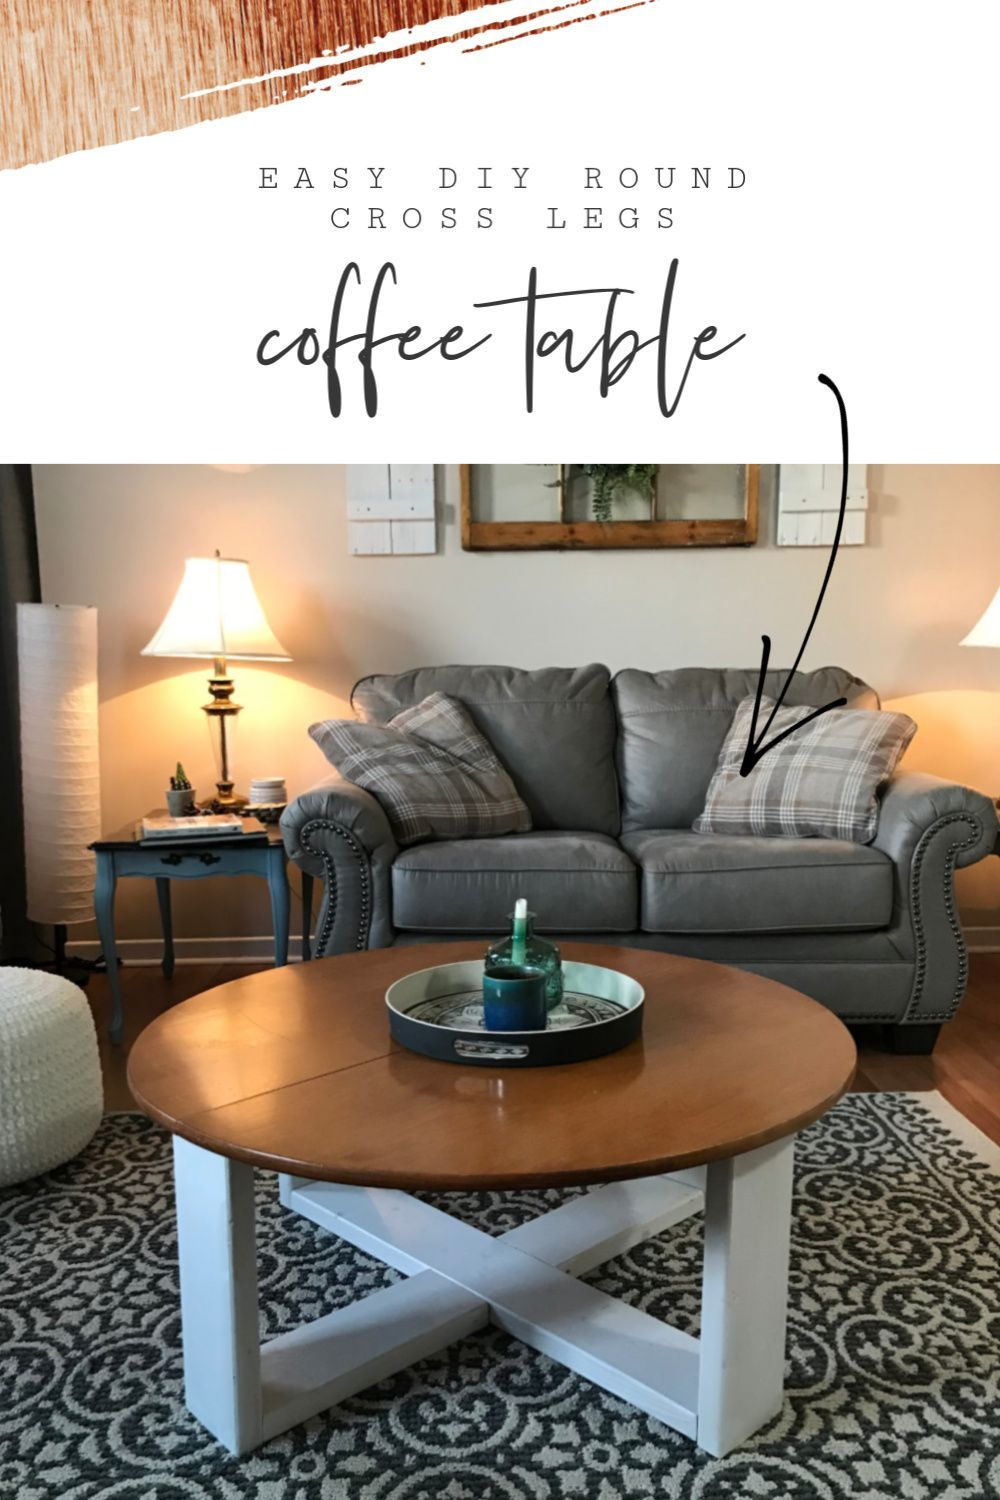 340 Coffee Table Diy Inspiration Ideas In 2021